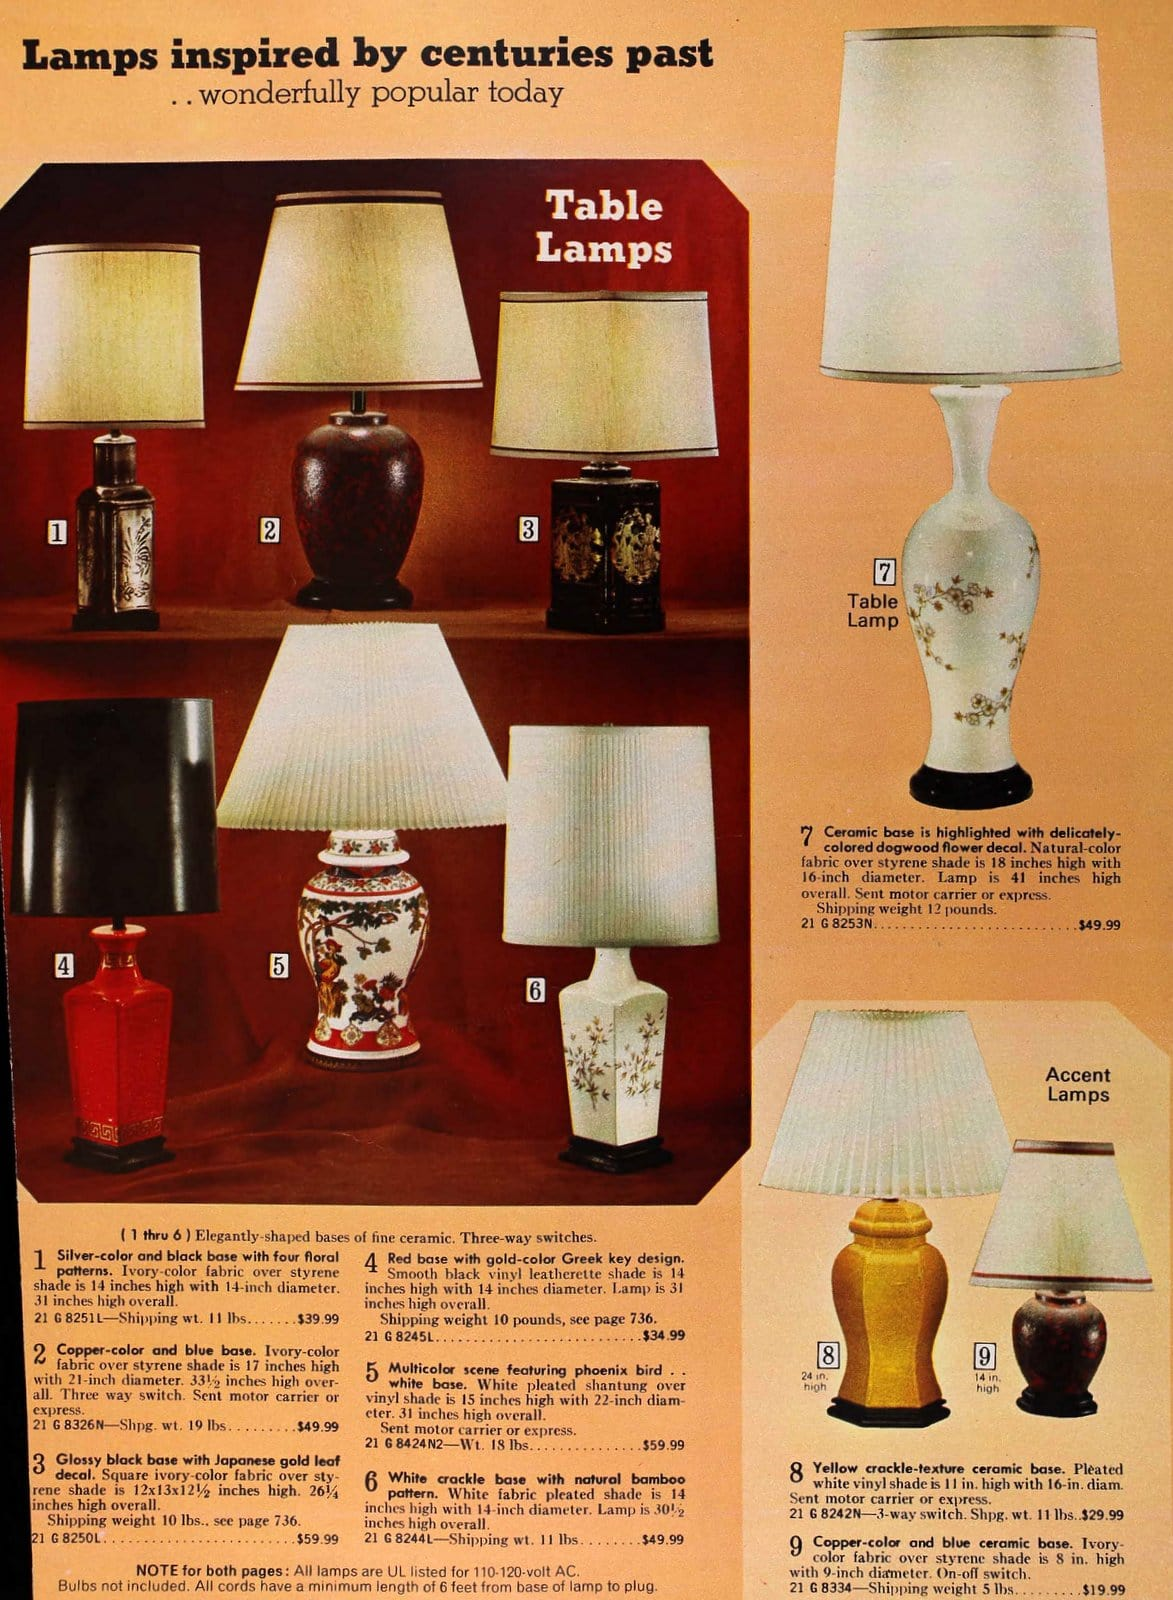 Antique-inspired lamps from the seventies (1973)